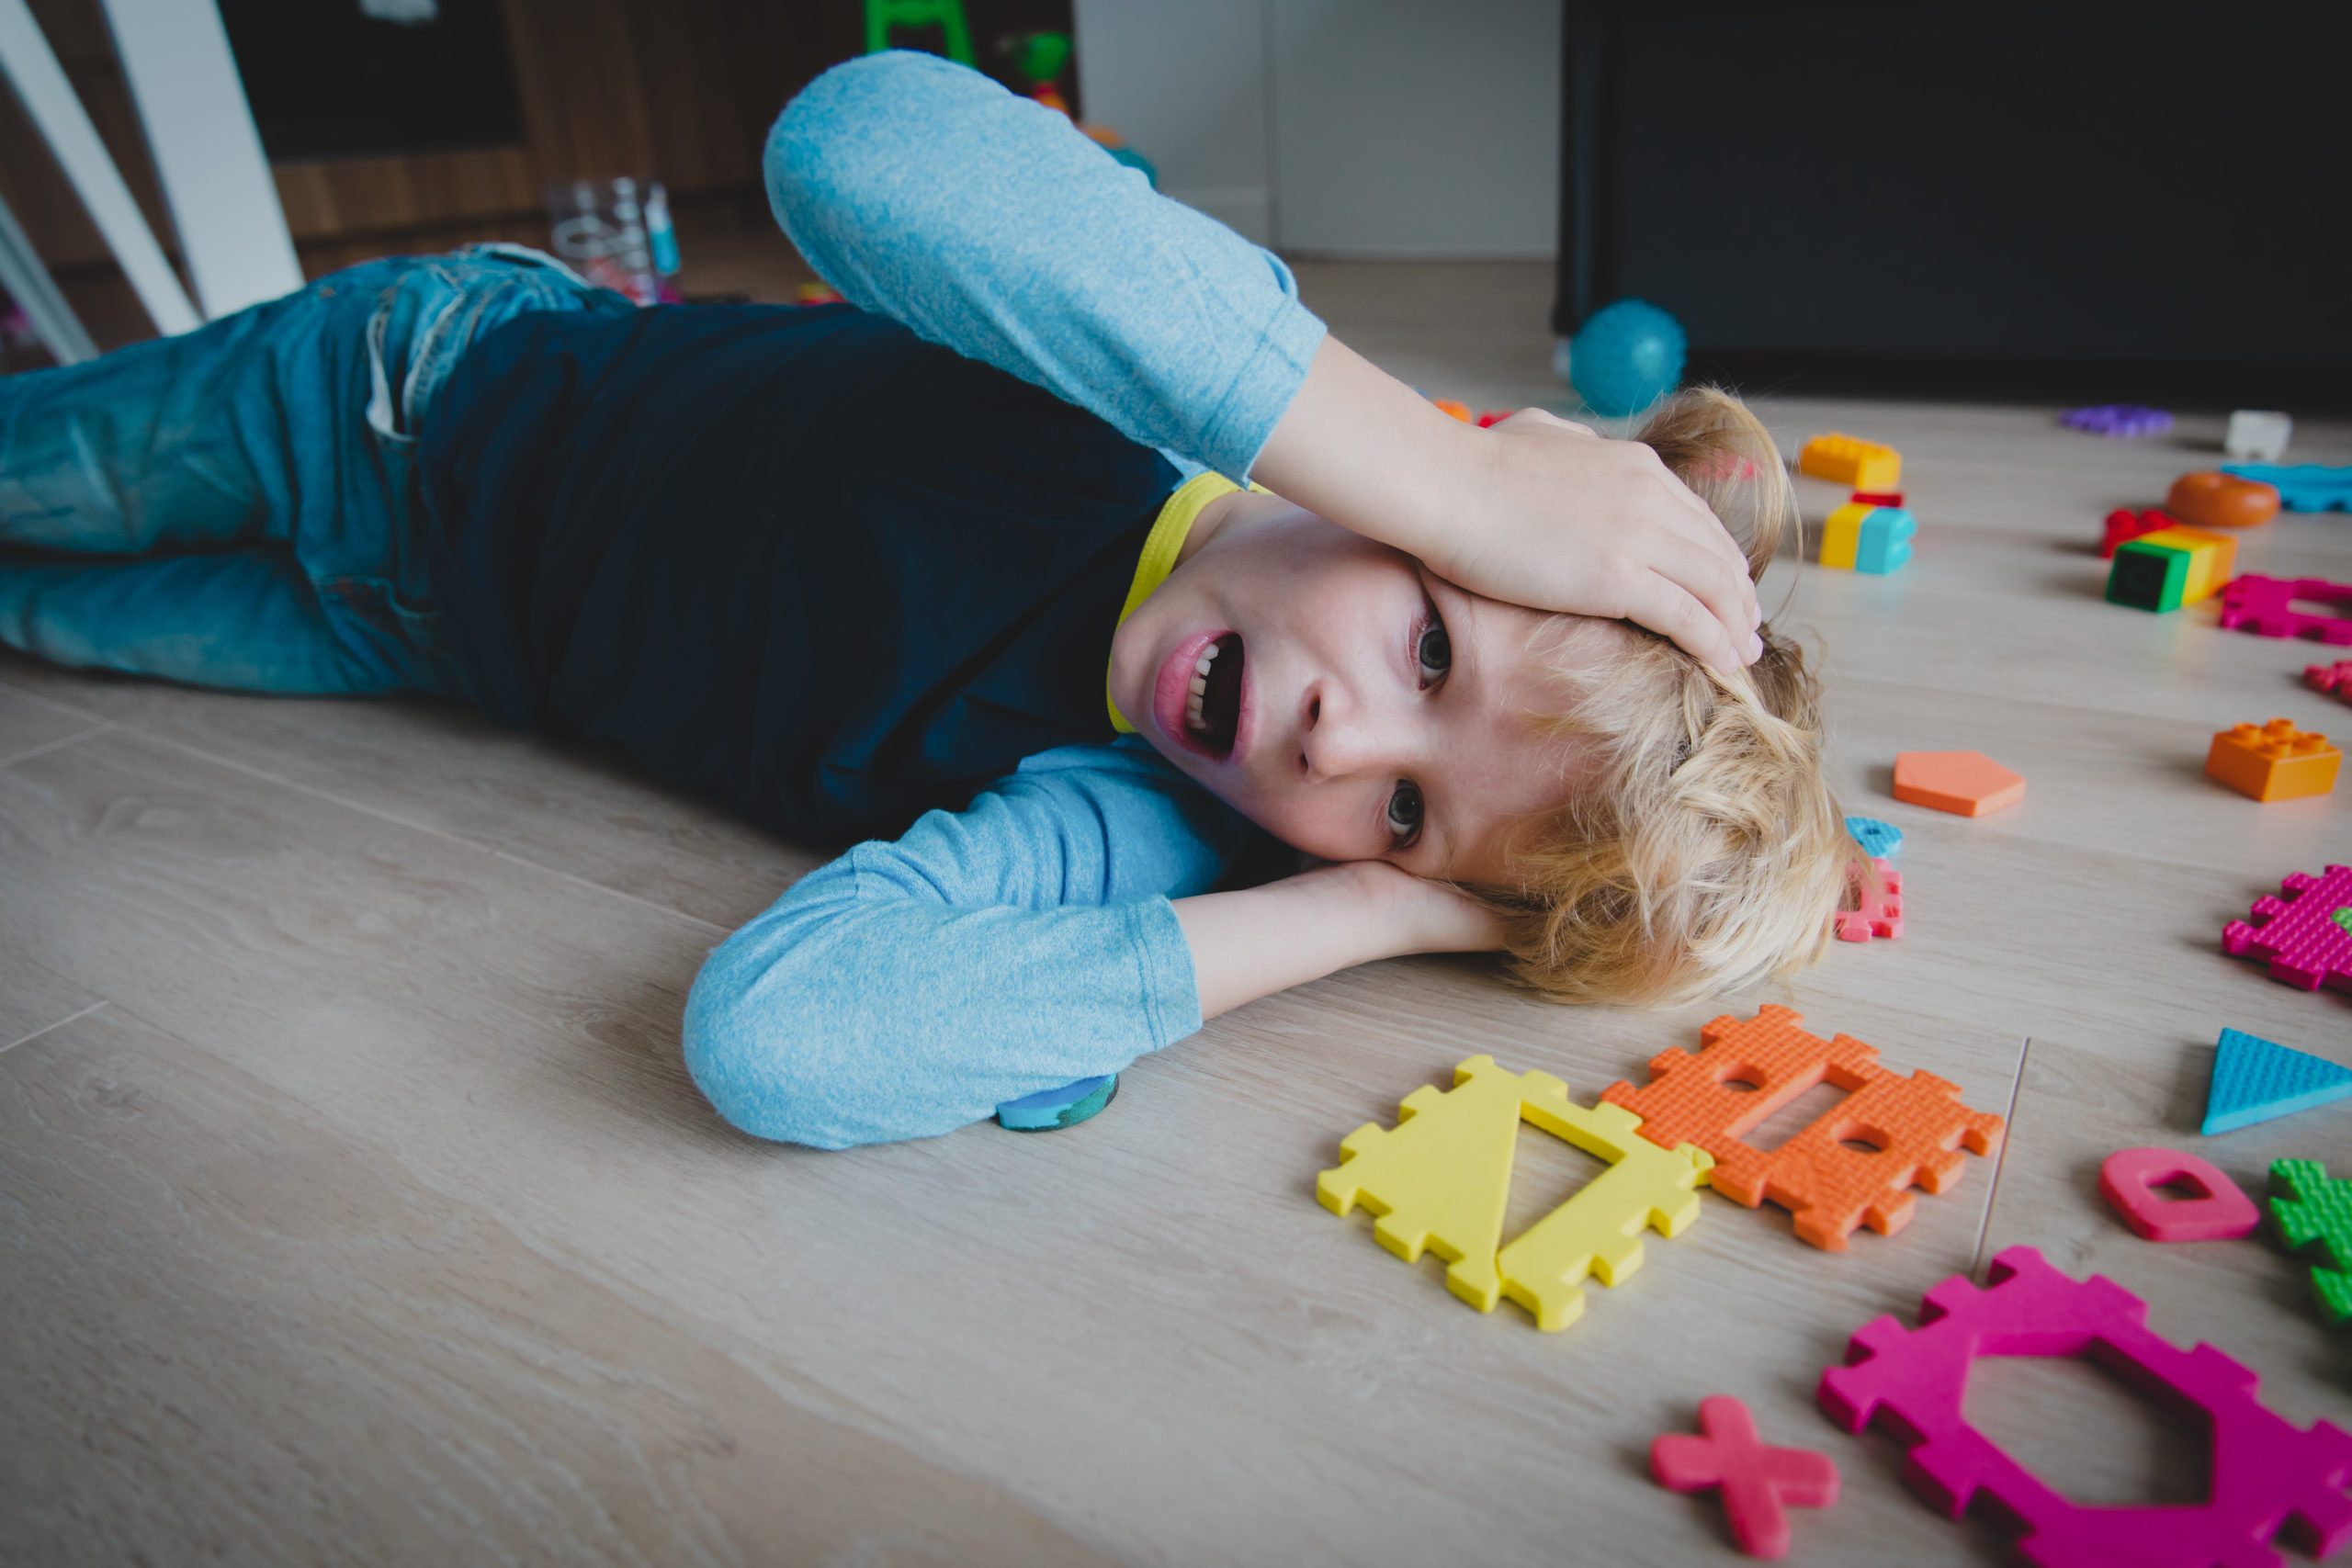 How do I deal with my child's outbursts?